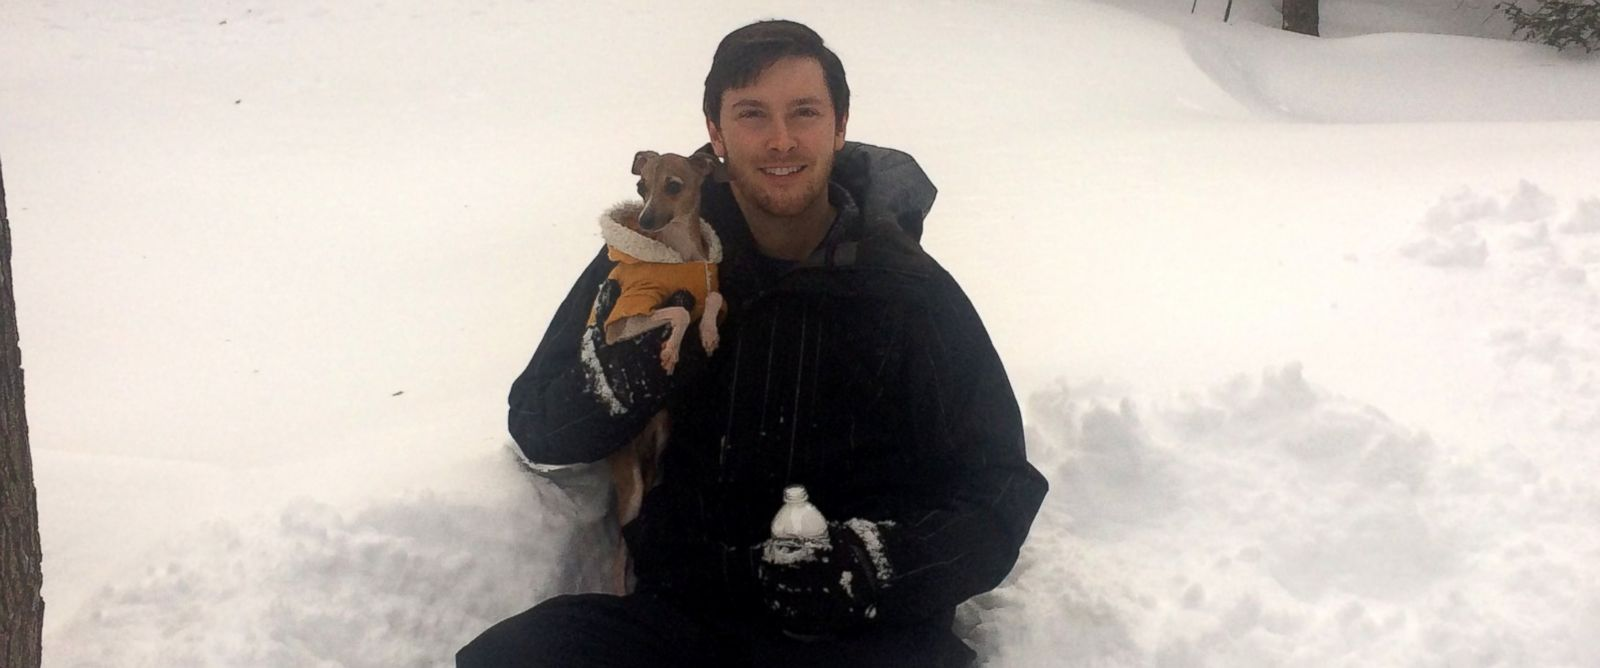 PHOTO: Kyle Waring, 27, of Manchester-by-the-Sea, Massachusetts, is selling snow on the Internet.